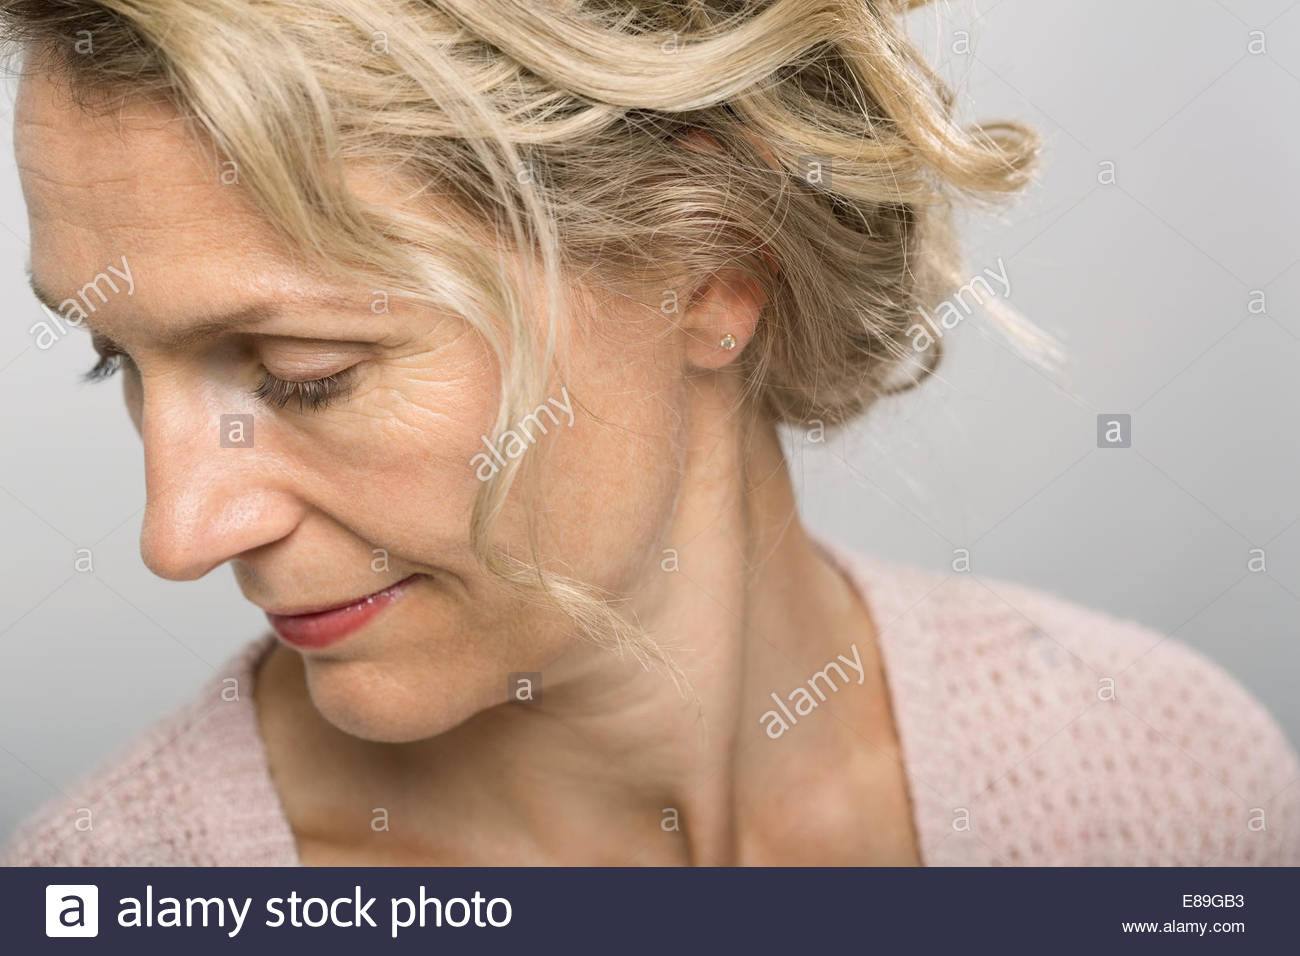 Close up of blonde woman Photo Stock